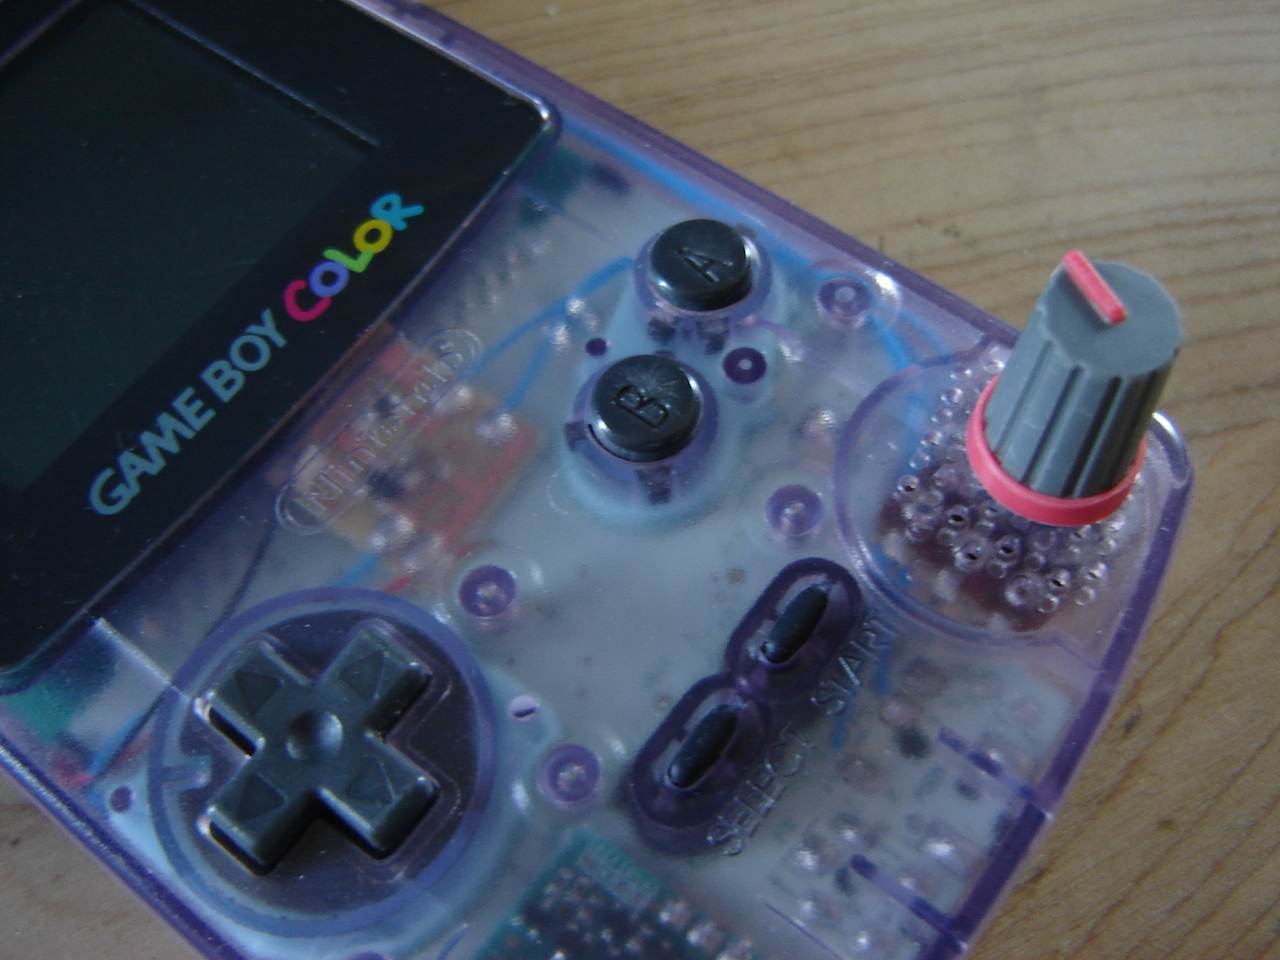 circuit bending the gameboy color getlofi s ltc precision one of the most requested tutorials has been the installation of ltc precision oscillator in the gameboy color the ltc module is a variable oscillator can